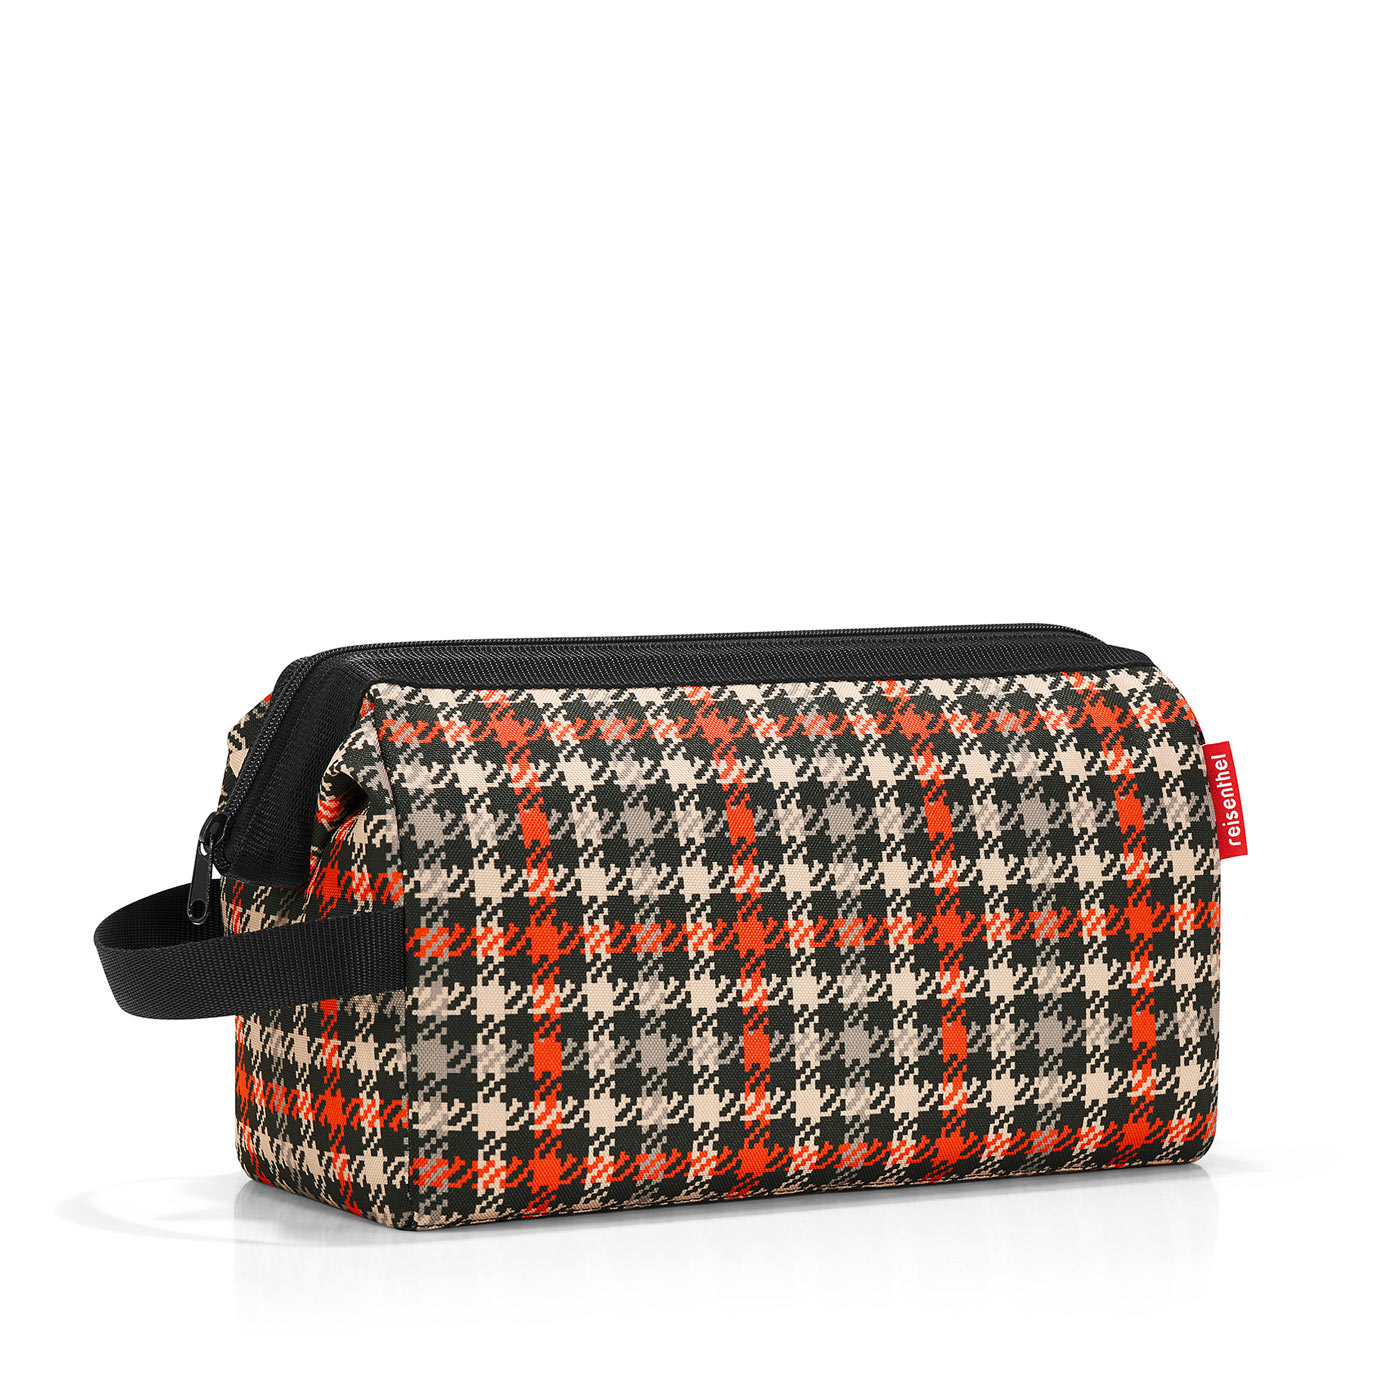 Travelcosmetic XL glencheck red